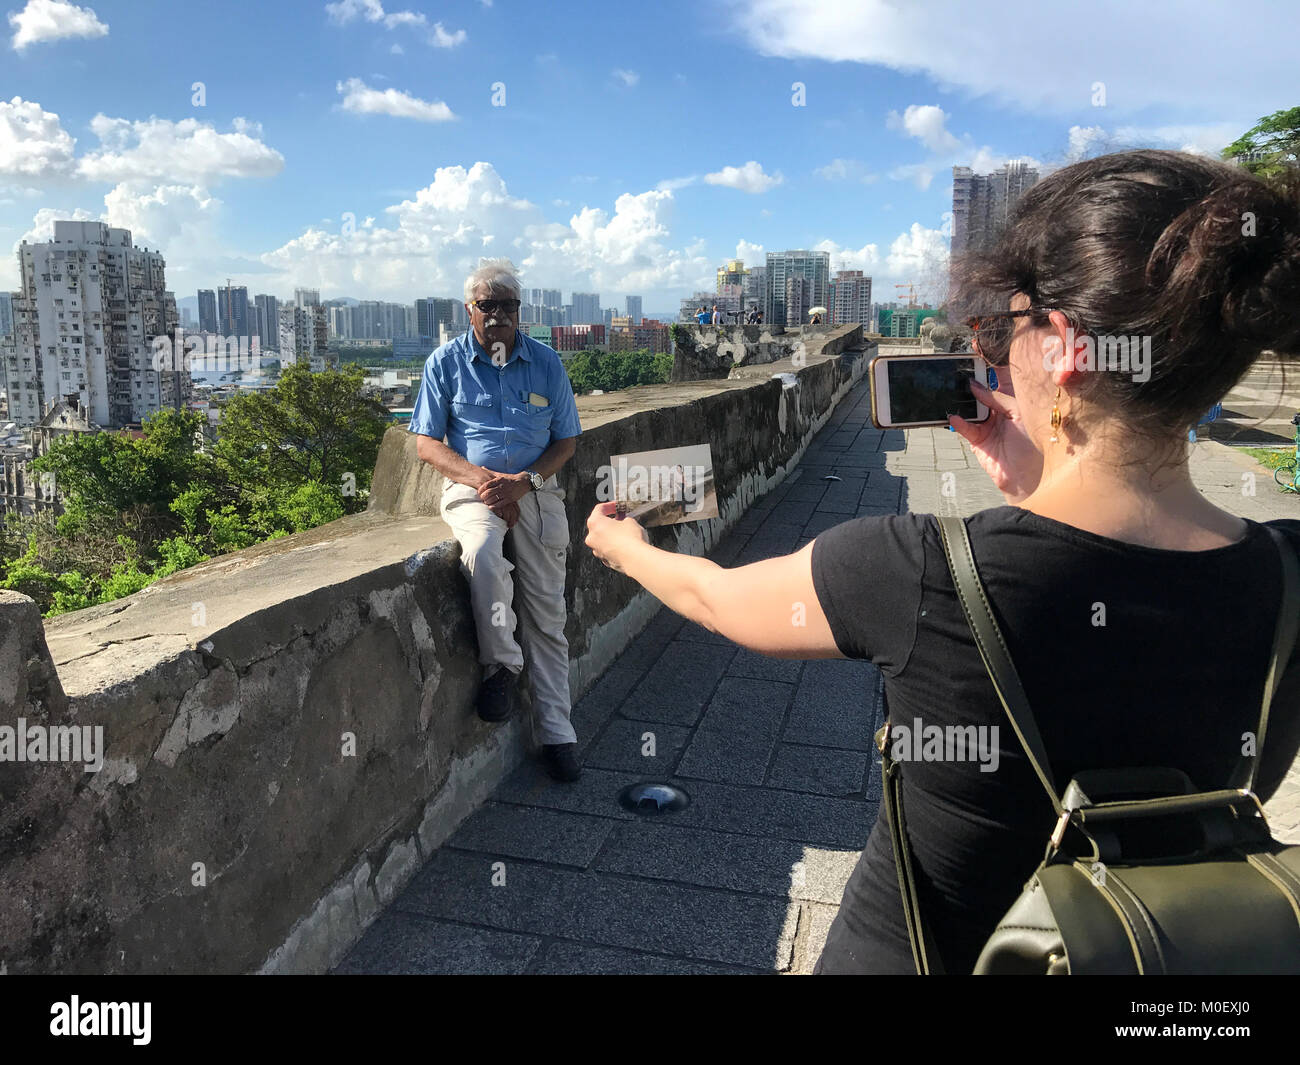 Woman holding an old photo photographing her father in same place years later, Macau, China - Stock Image